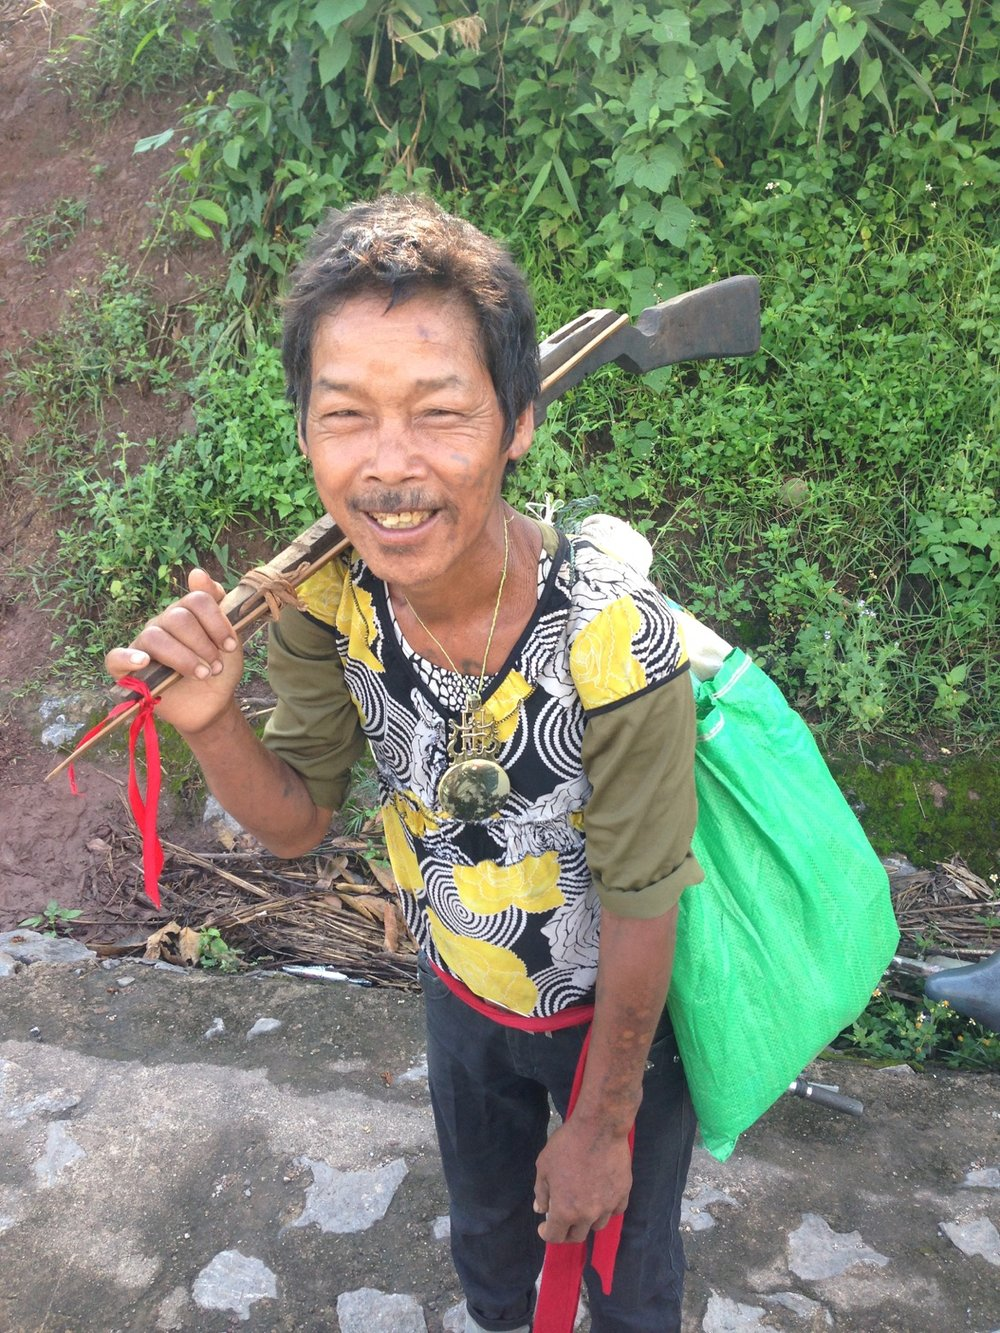 I met this Vietnamese native on the street and had a chat with him.